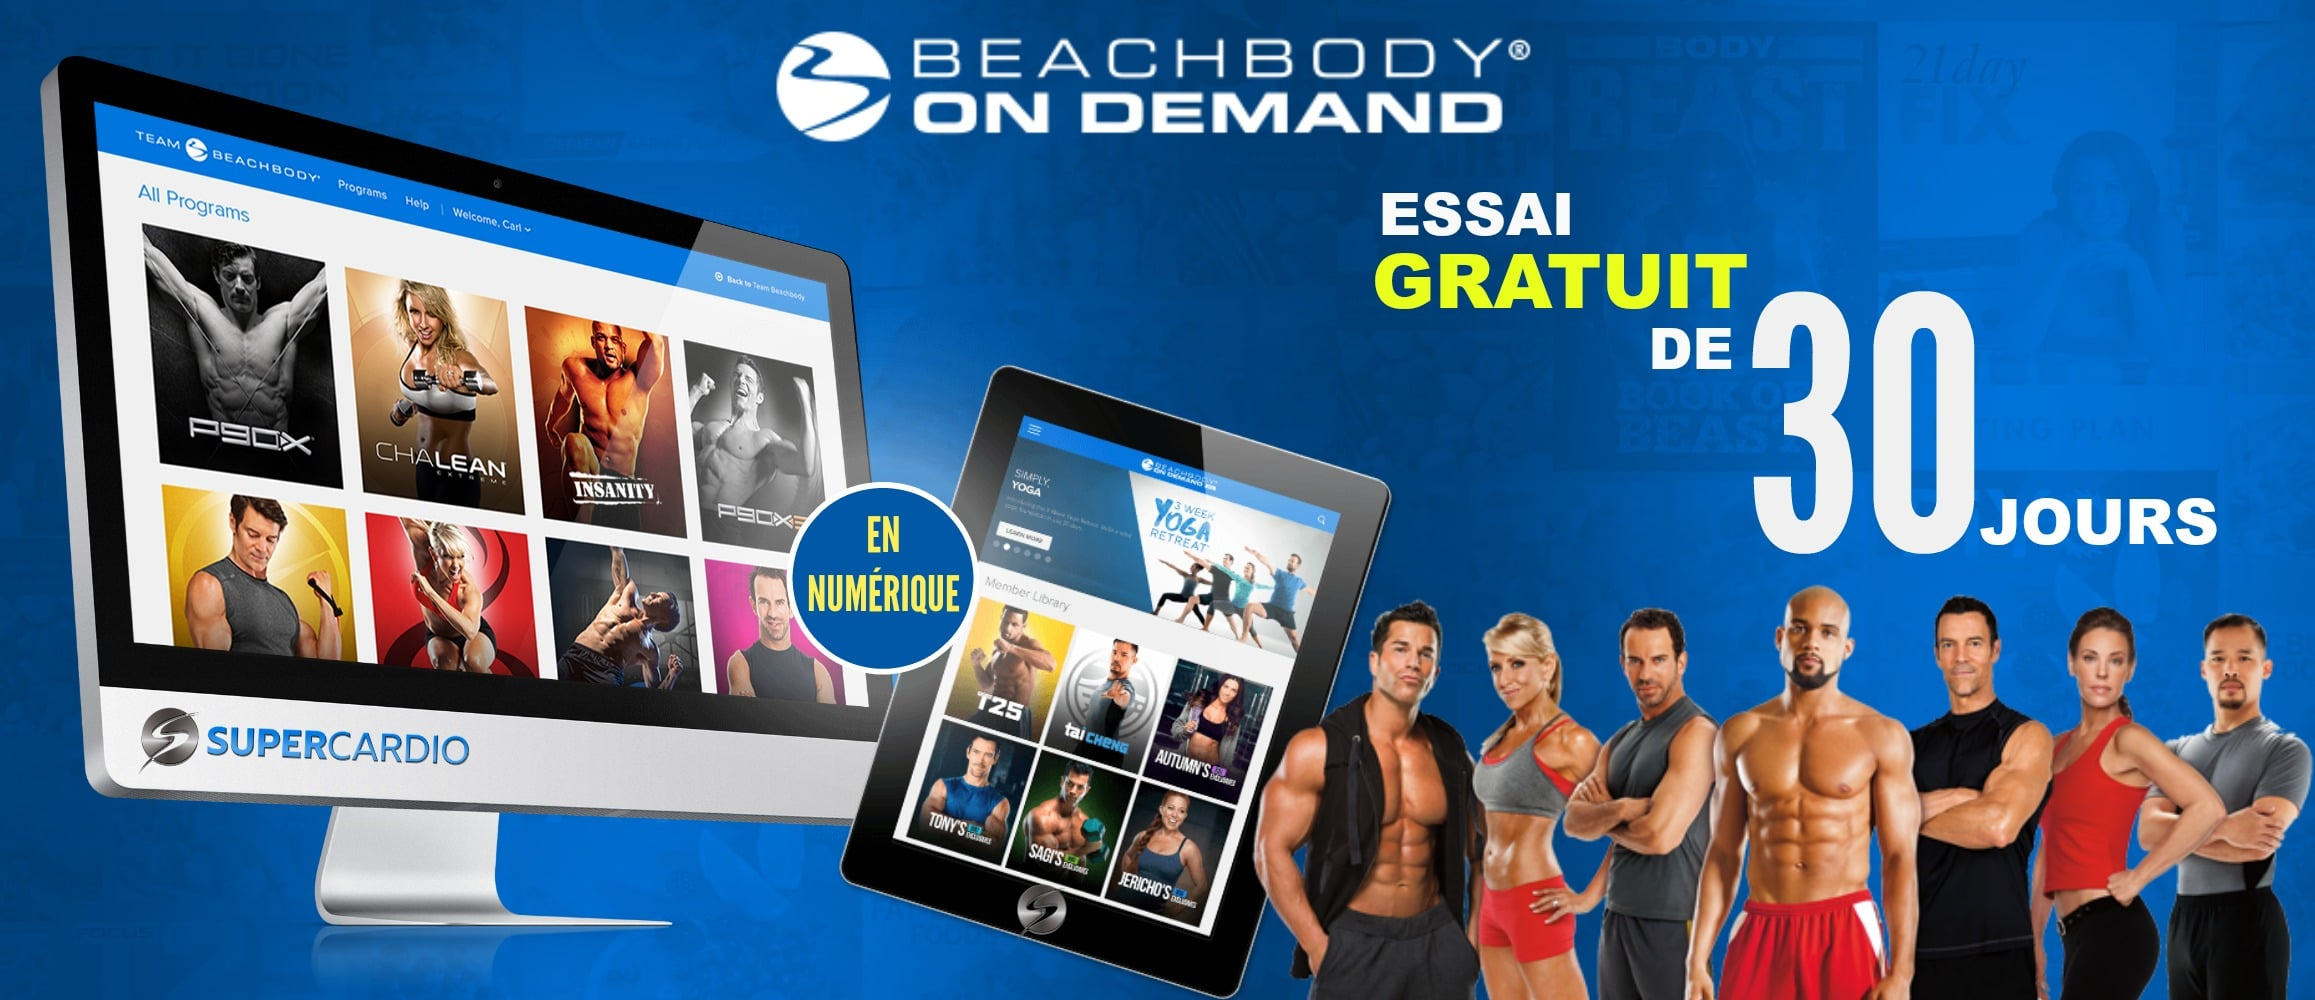 Beachbody on Demand essai gratuit 30 jours supercardio